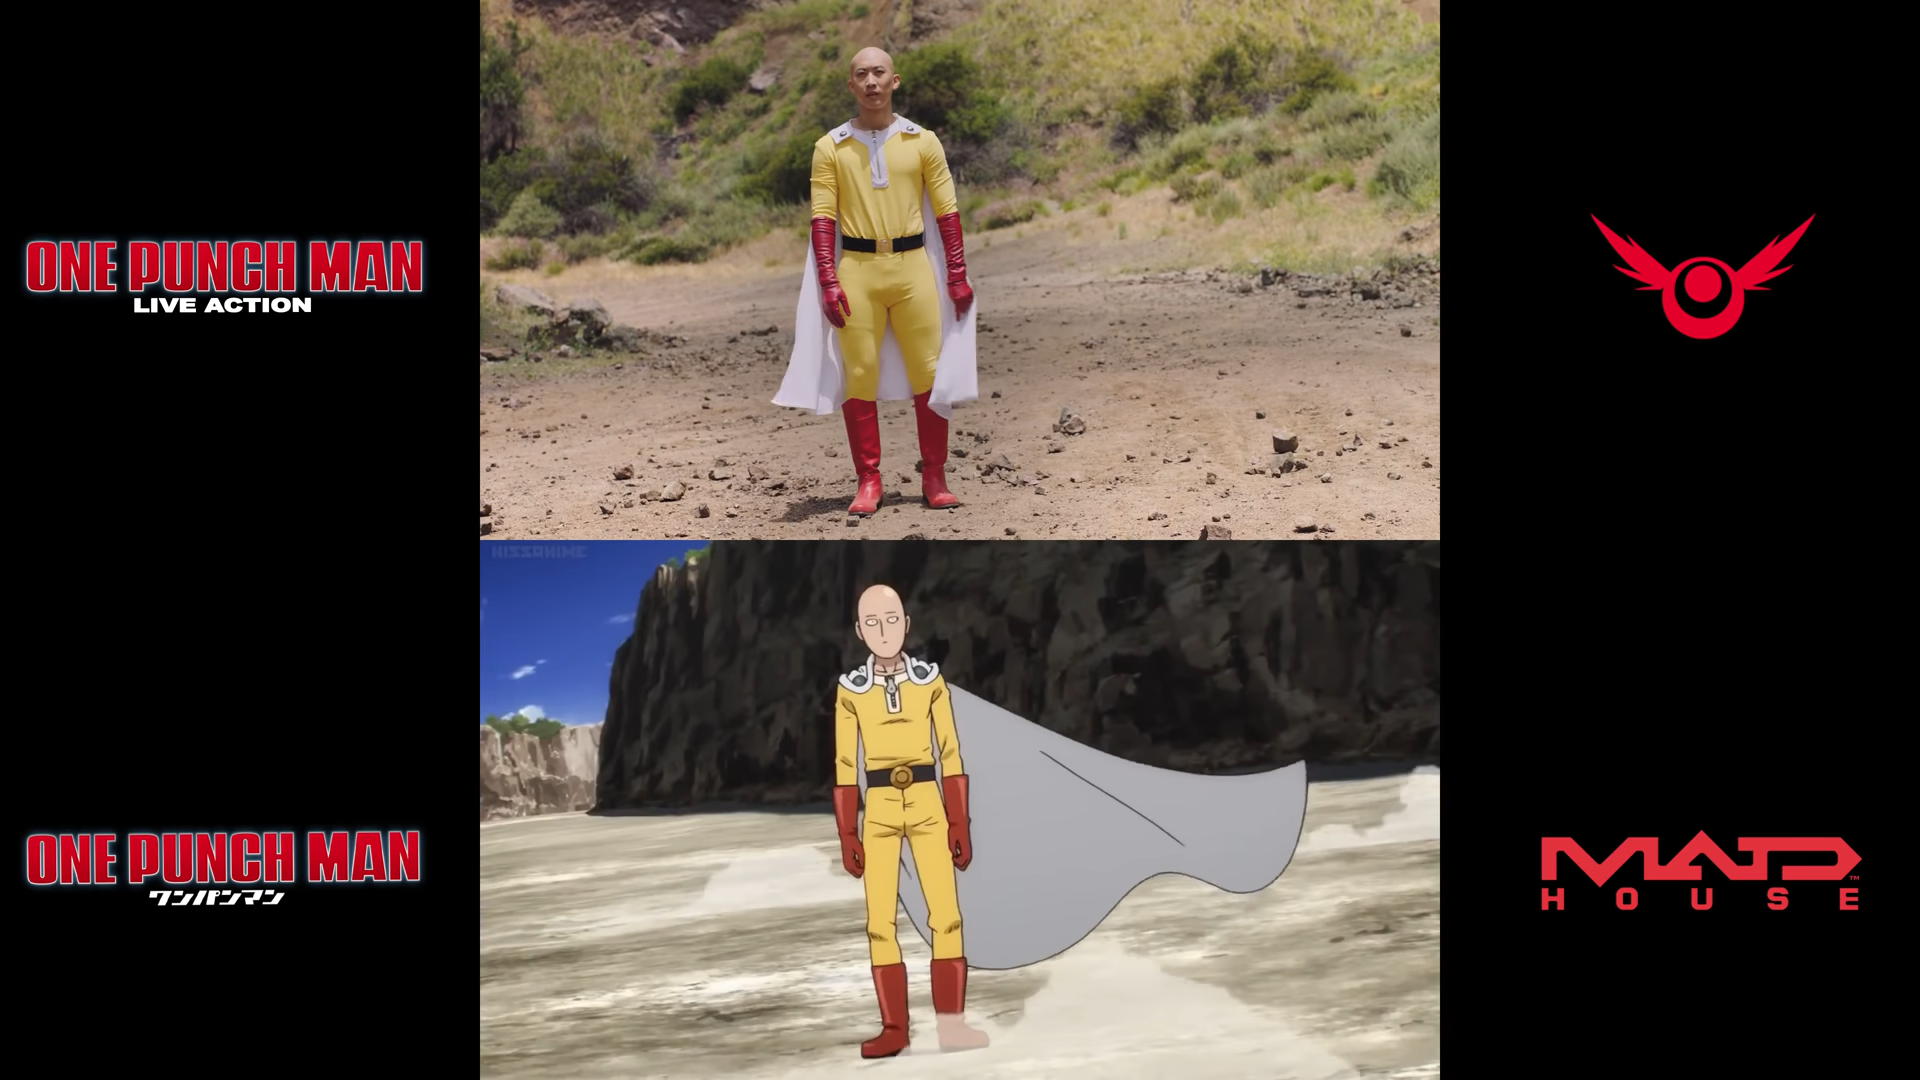 One Punch Man - Anime vs Live Action | RE:Anime Image'